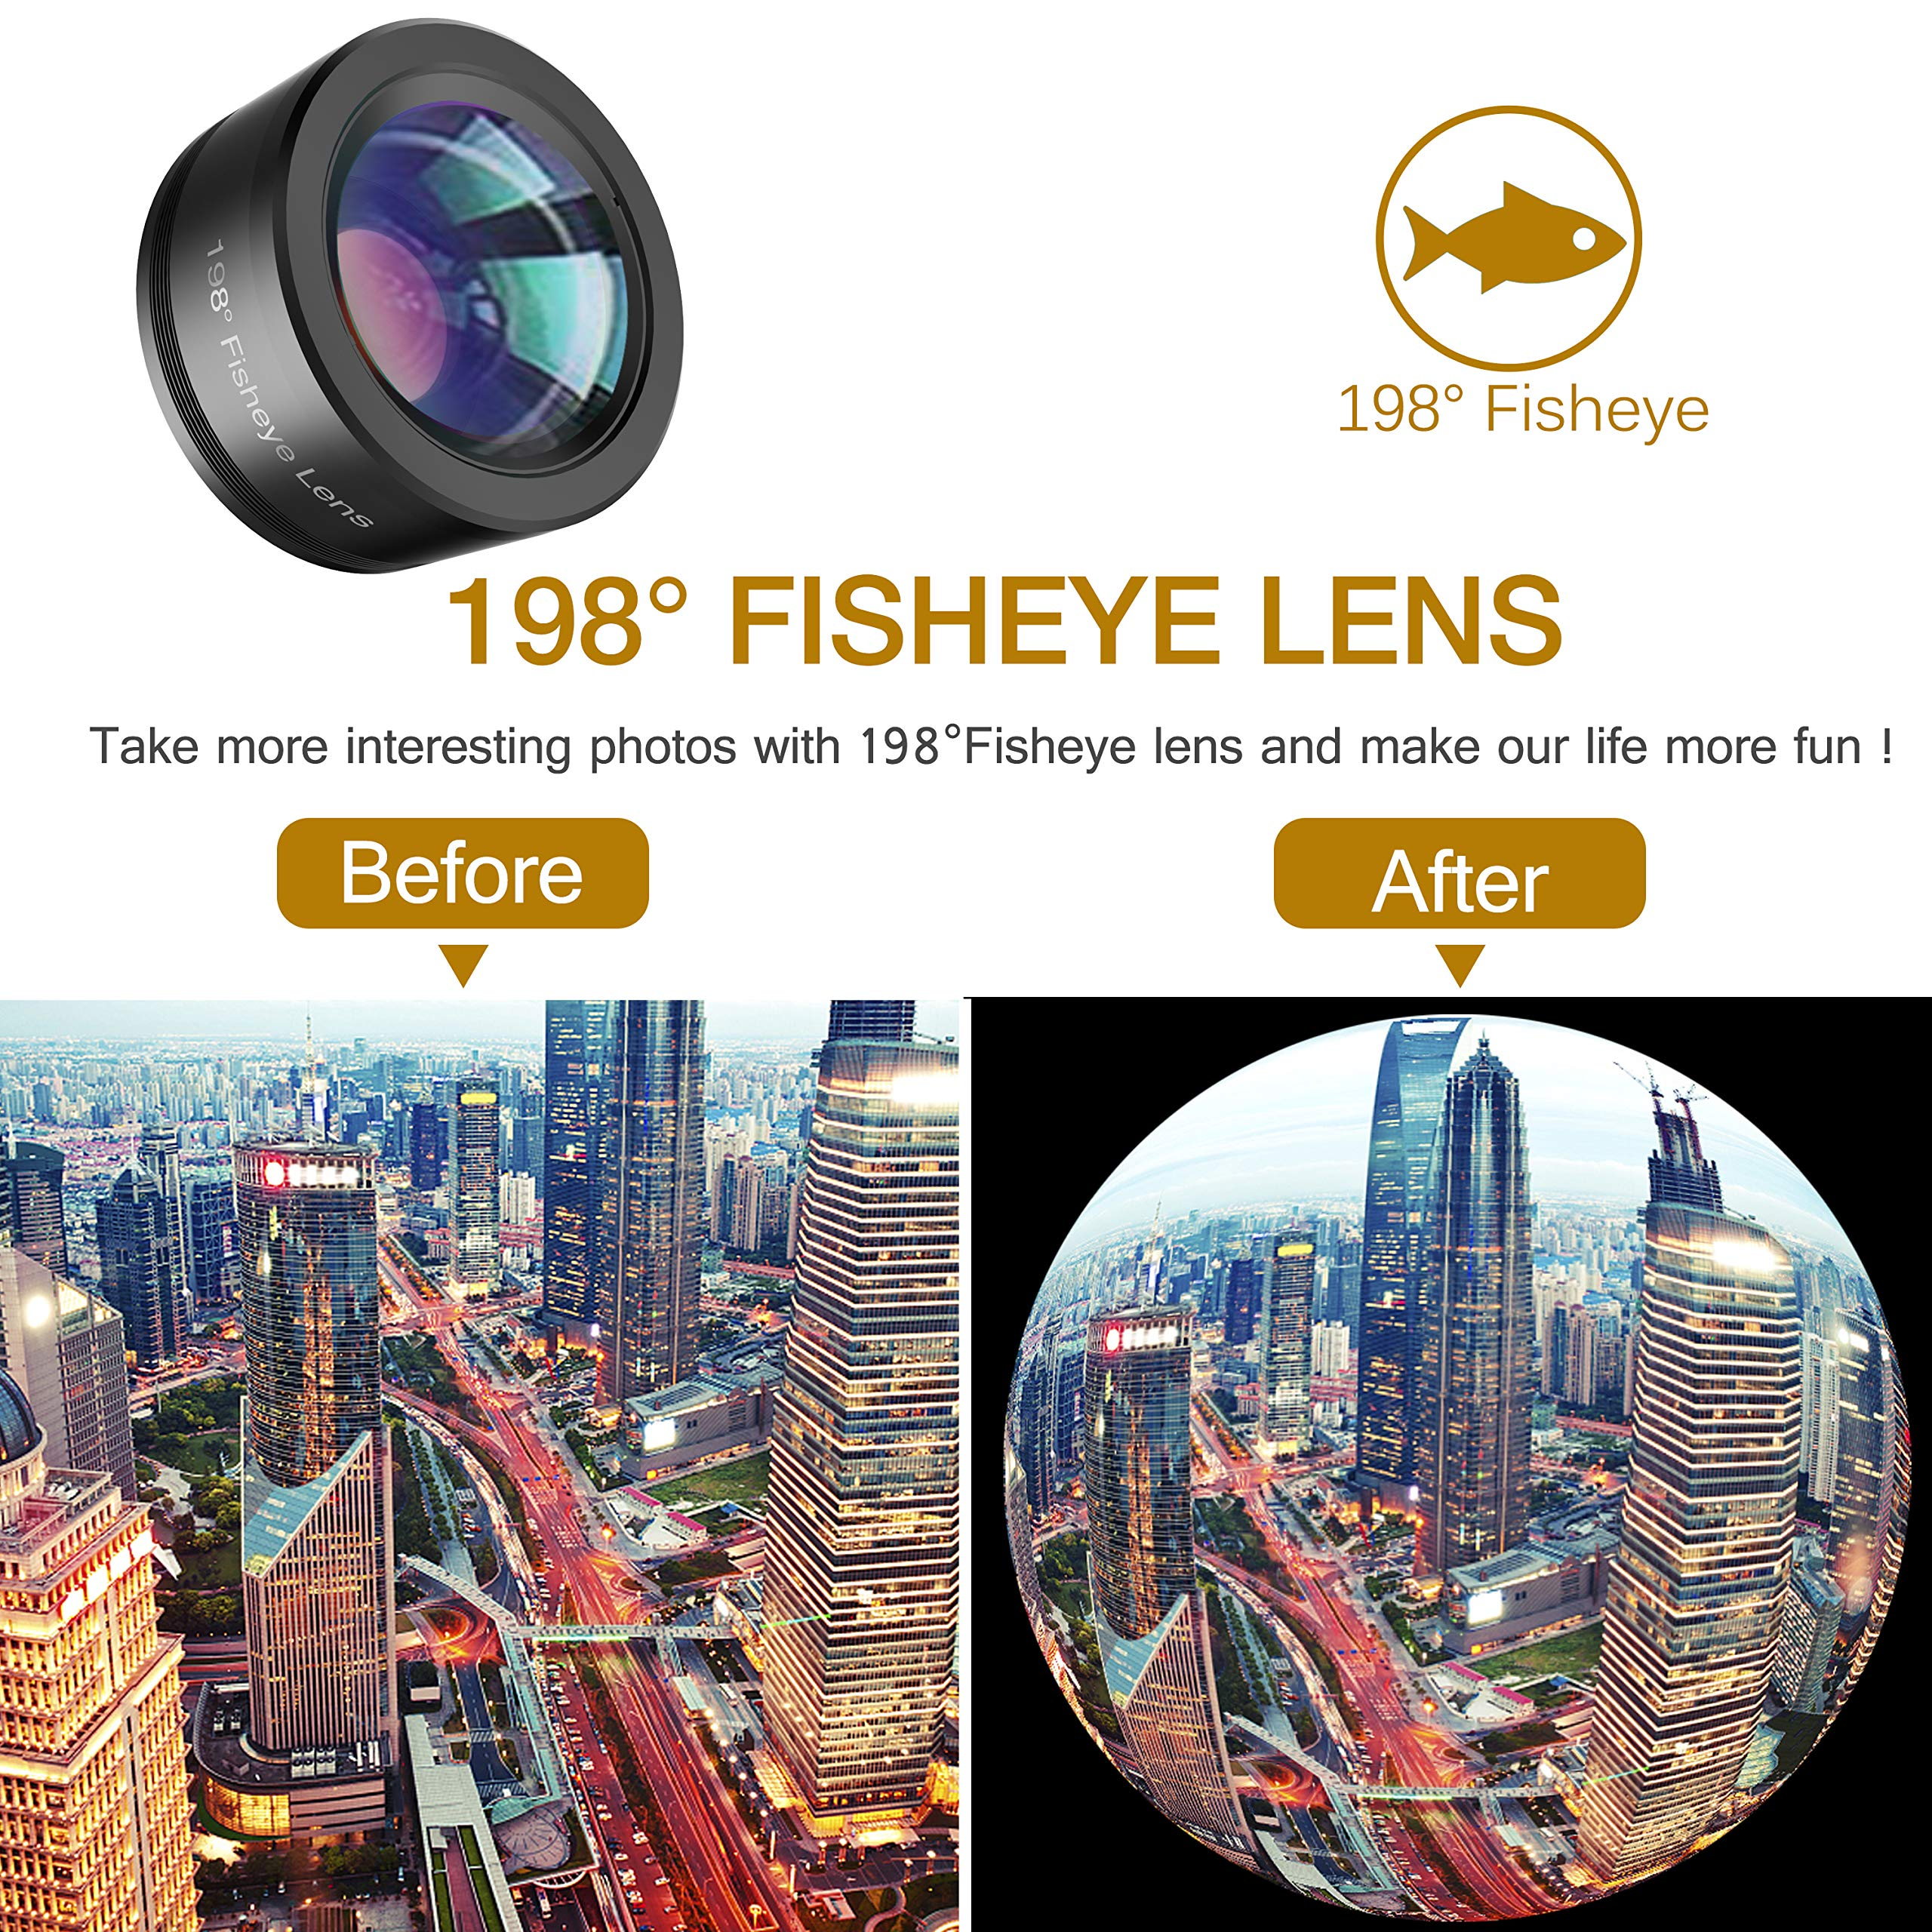 Phone Camera Lens,Upgraded 3 in 1 Phone Lens kit-198° Fisheye Lens + 20X Macro Lens + 120° Wide Angle Lens,Clip on Cell Phone Lens Kits Compatible with iPhone,iPad,Most Android Phones and Smartphones by LEKNES (Image #5)